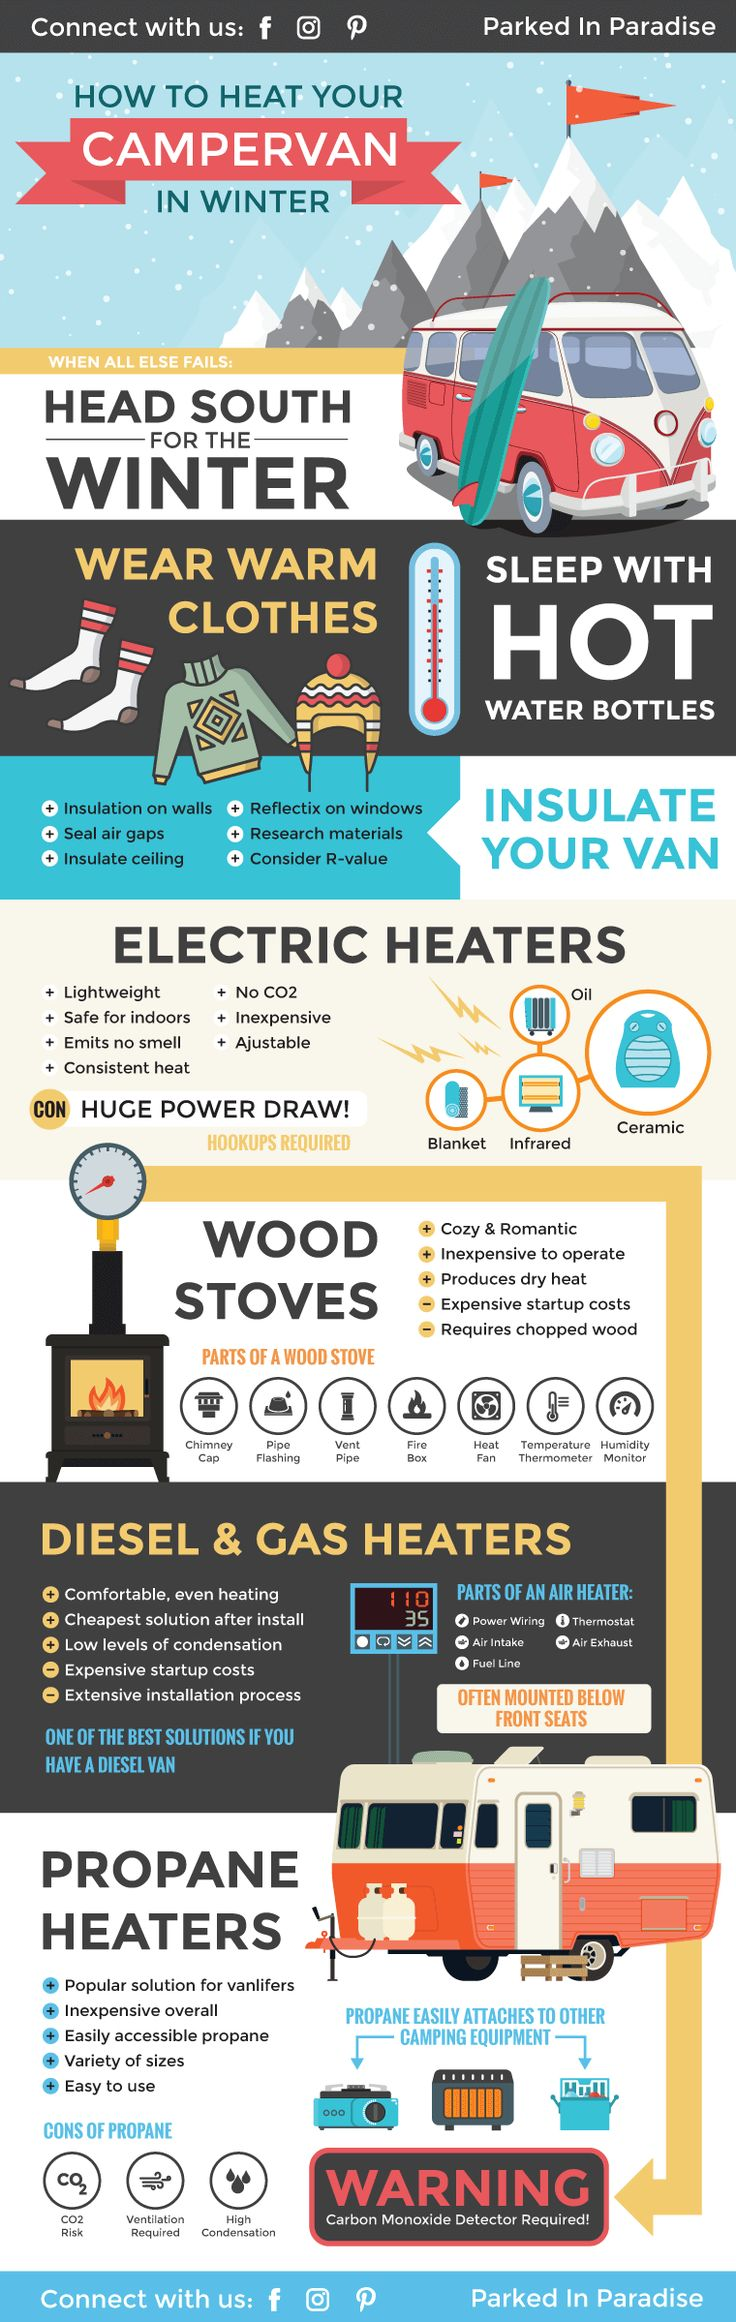 Easy to read tips on how to heat your campervan! Perfect for van life, campers and anyone who want to stay warm this winter. I love the section on micro wood stoves, they make for the perfect campervan interior!  via @parkedinparadise